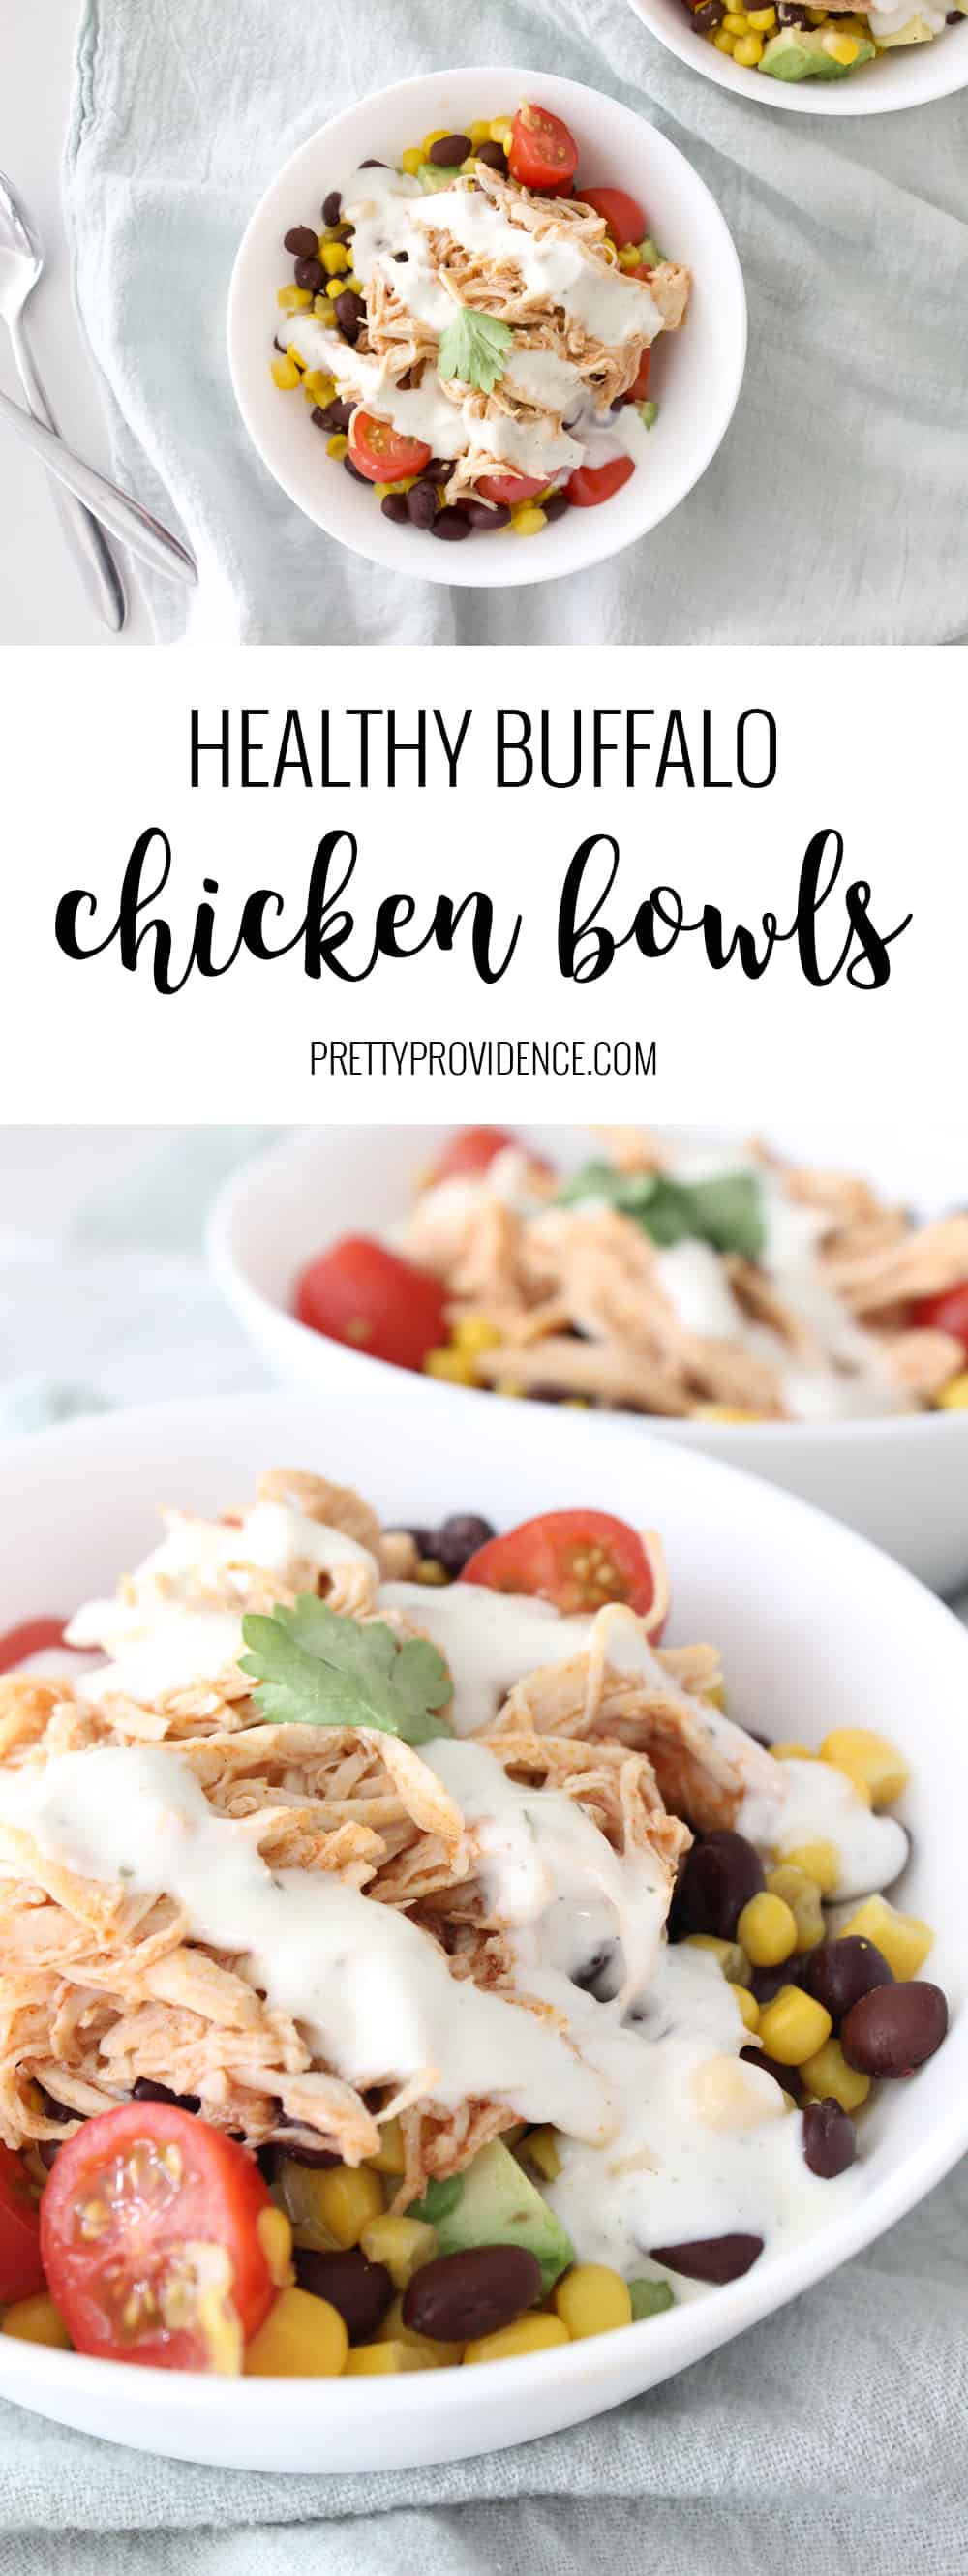 If you love healthy bowl recipes then you will love these buffalo chicken bowls! Made with tons of veggies, shredded buffalo chicken, avocados and a light ranch dressing they are filling and delicious! #buffalochicken #buffalochickencrockpot #buffalochickenbowls #healthydinnerrecipes #healthydinneridea #eatinghealthy #healthymeals